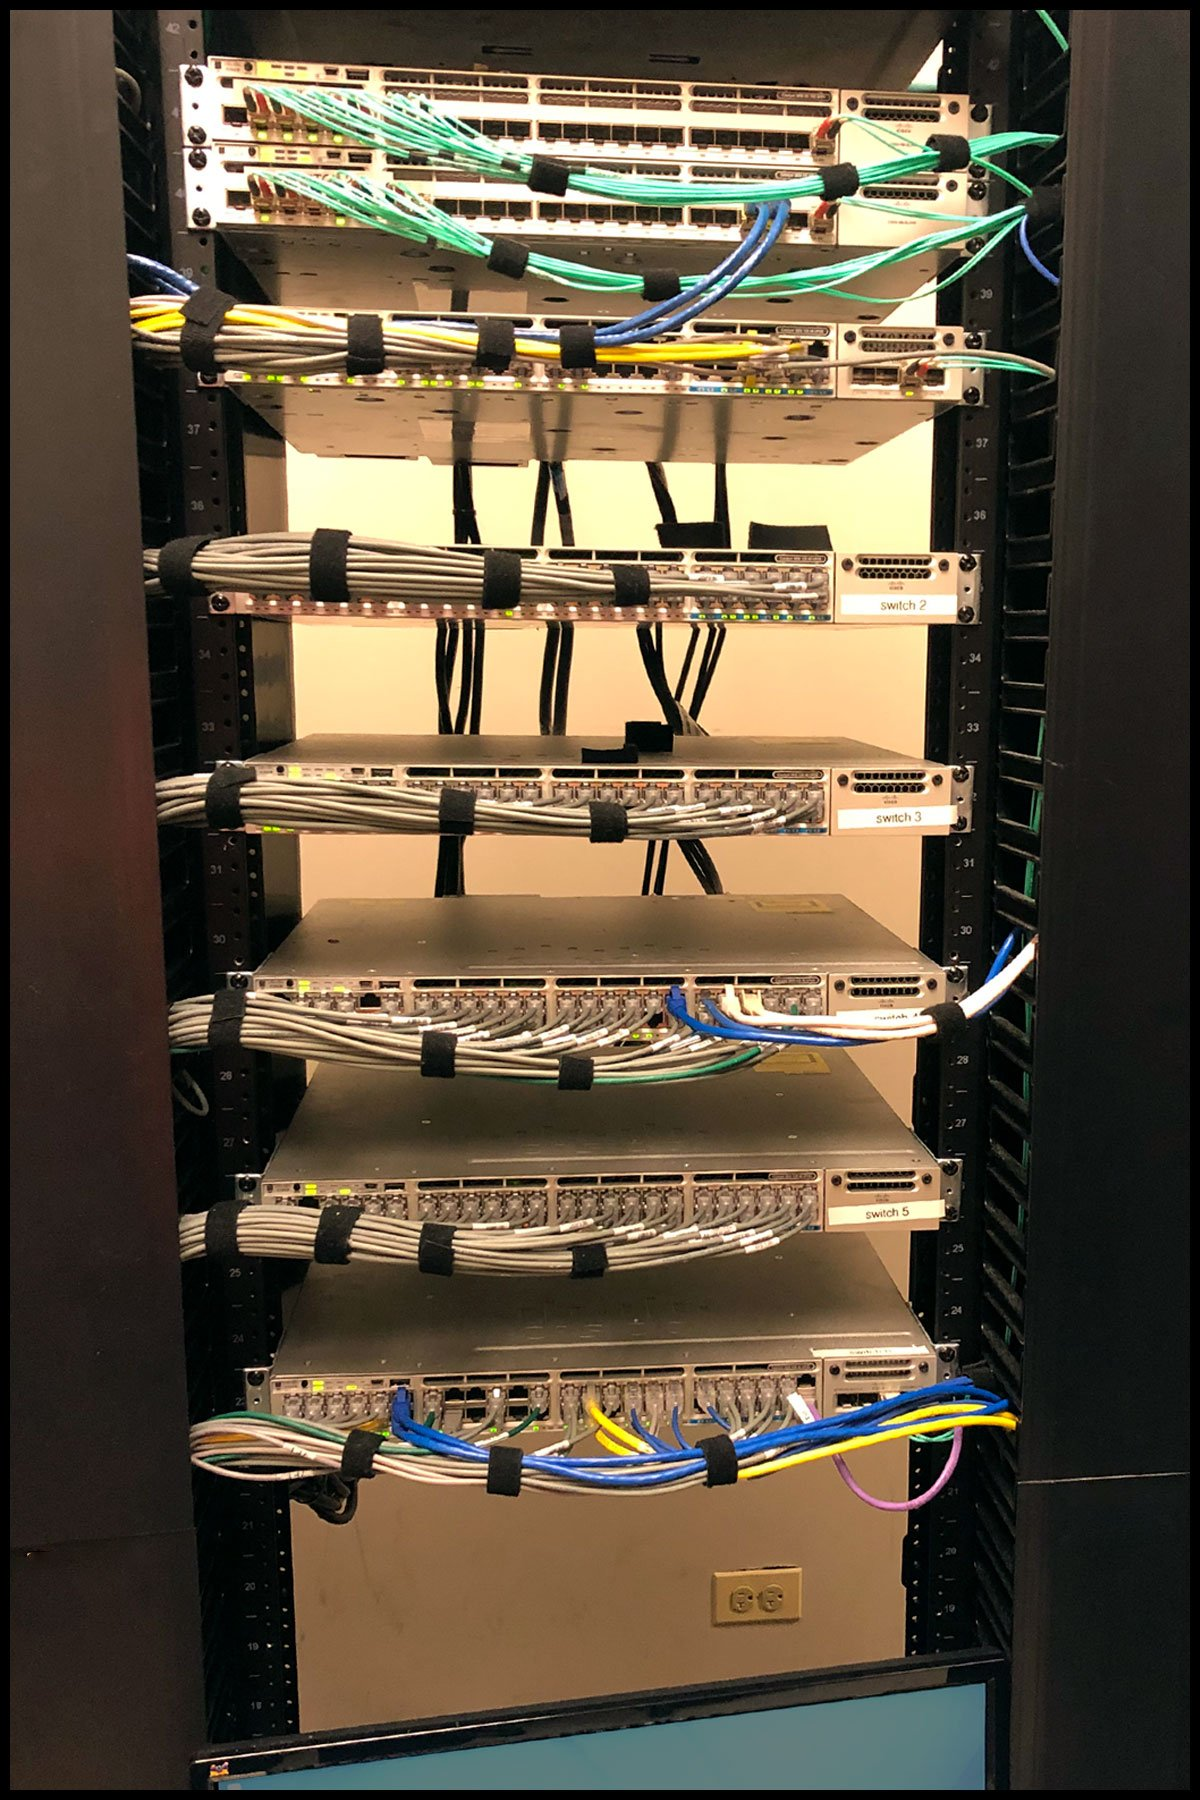 Network structured cabling installation